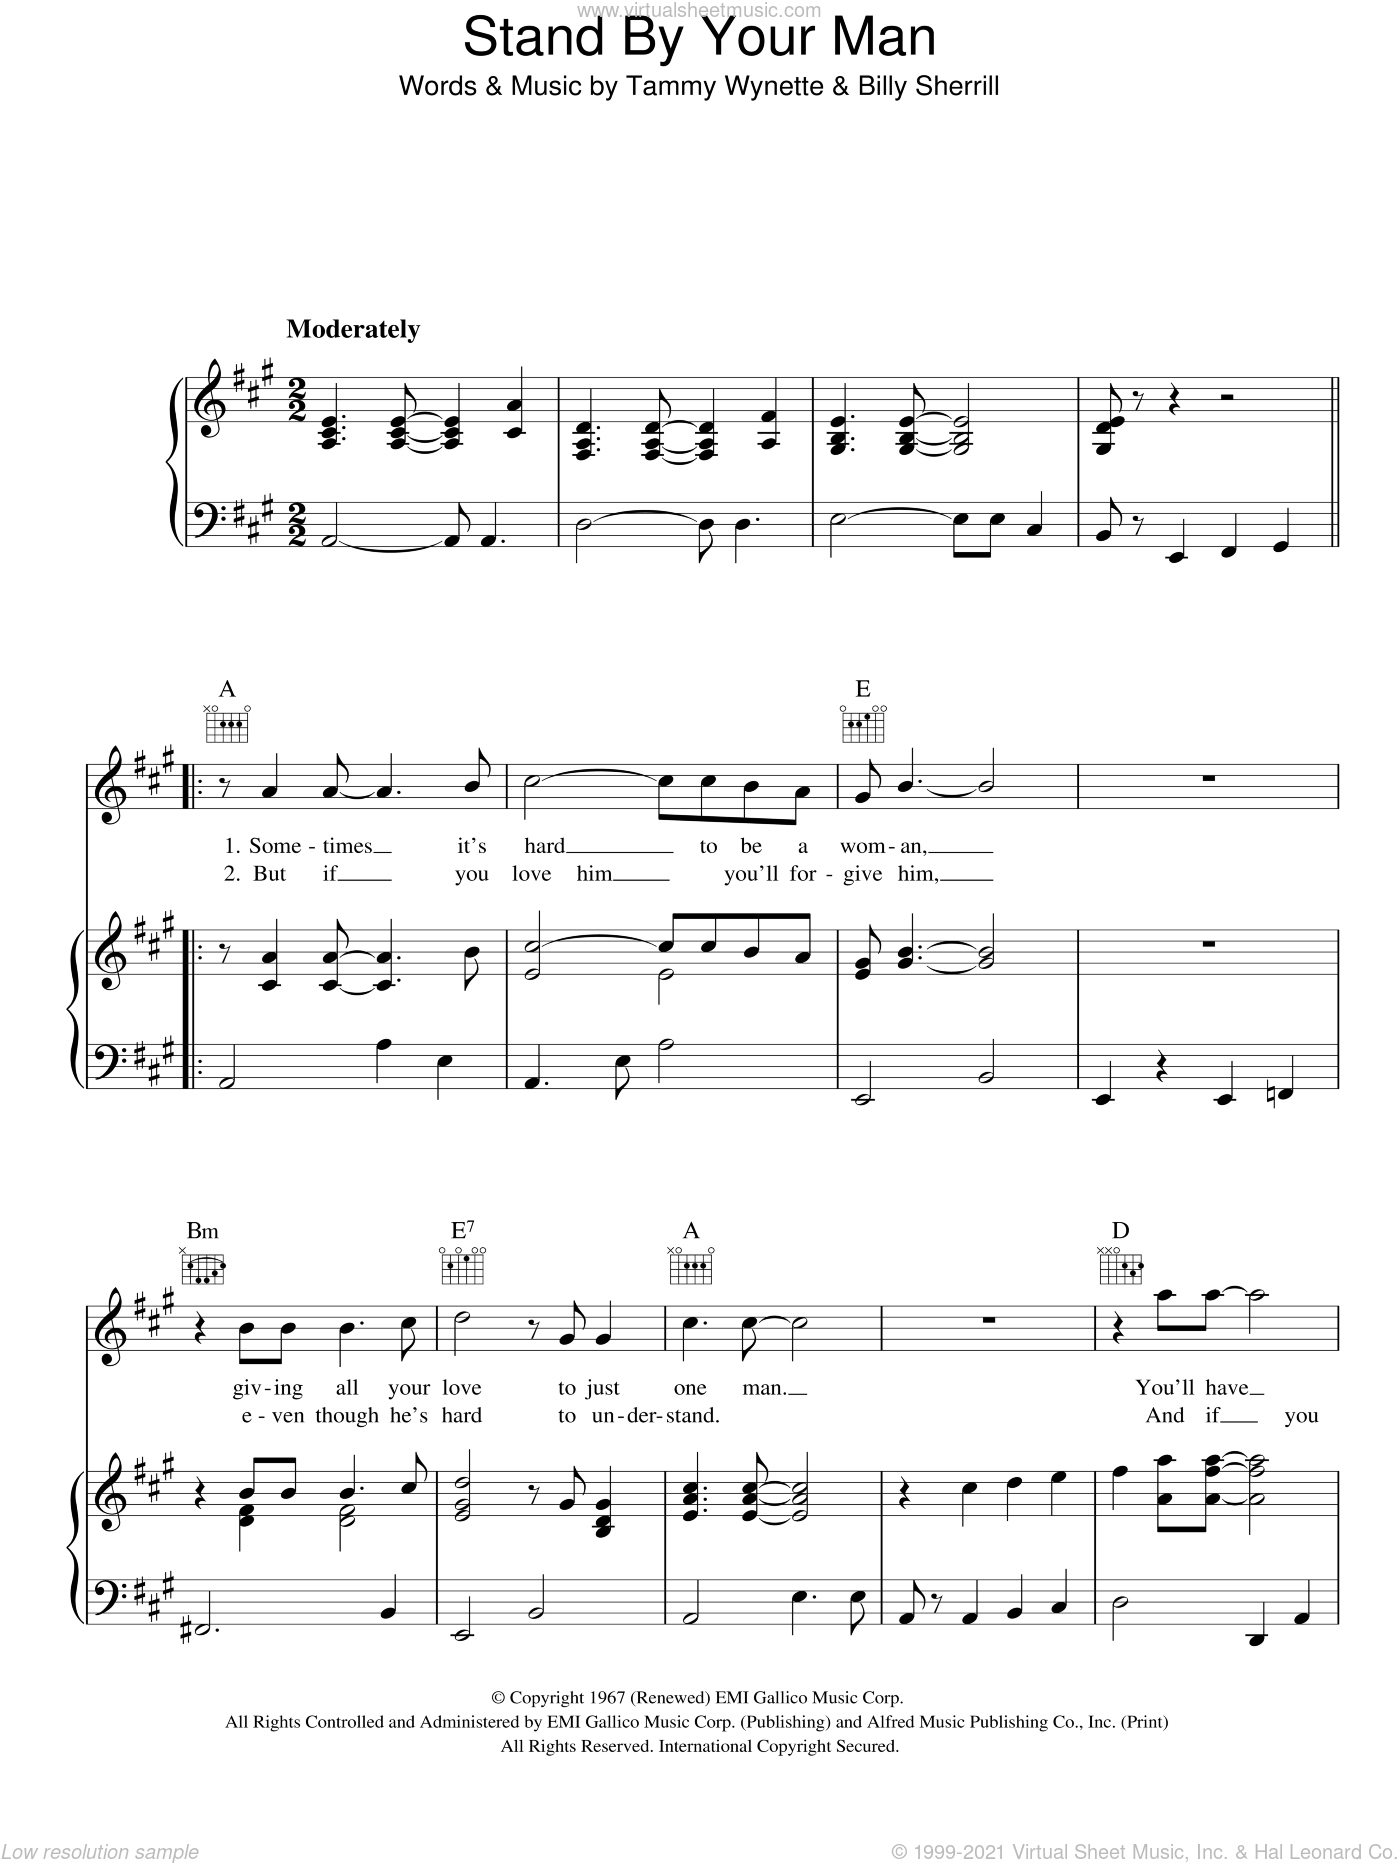 Stand By Your Man sheet music for voice, piano or guitar by Billy Sherrill